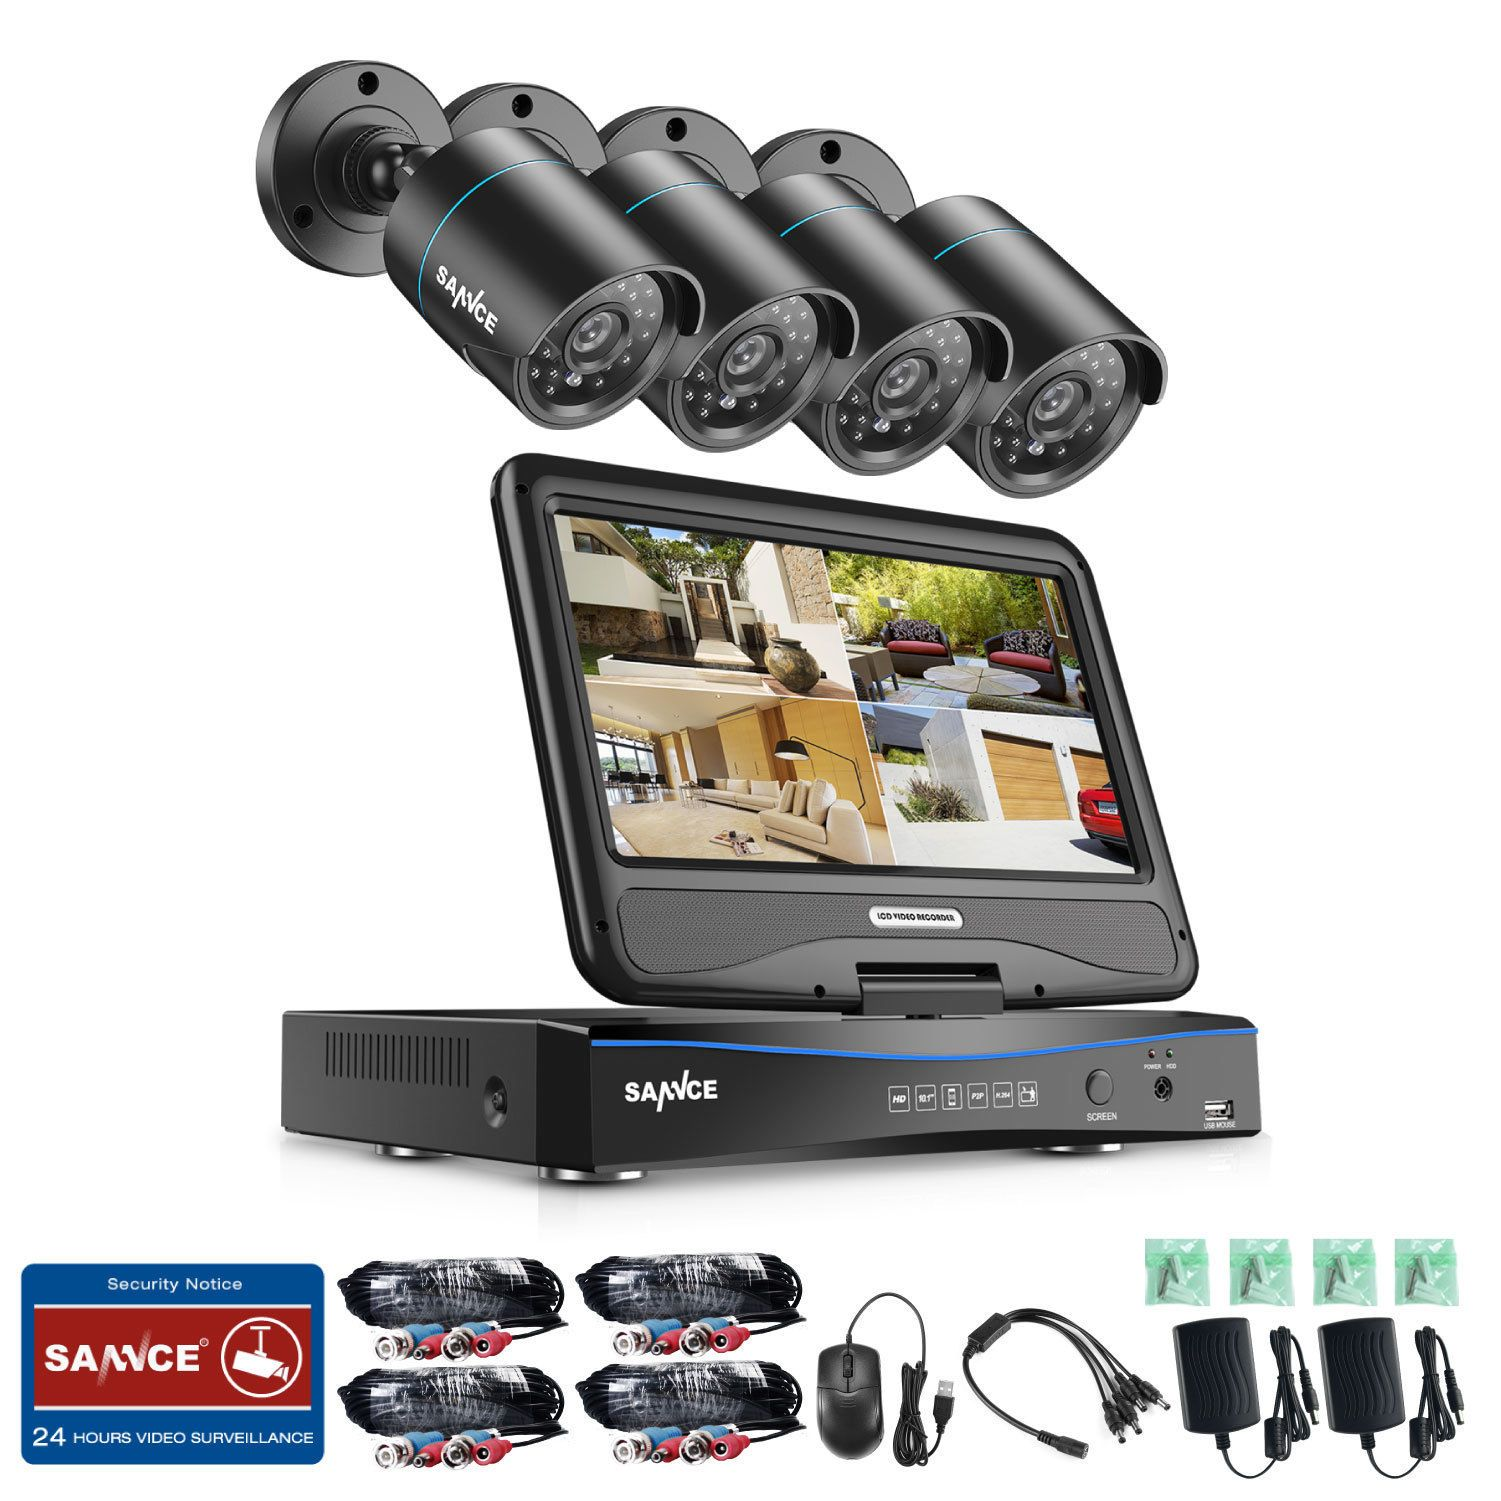 SANNCE 4CH//8CH 1080N LCD Monitor DVR 1500TVL In//Outdoor Security Camera System